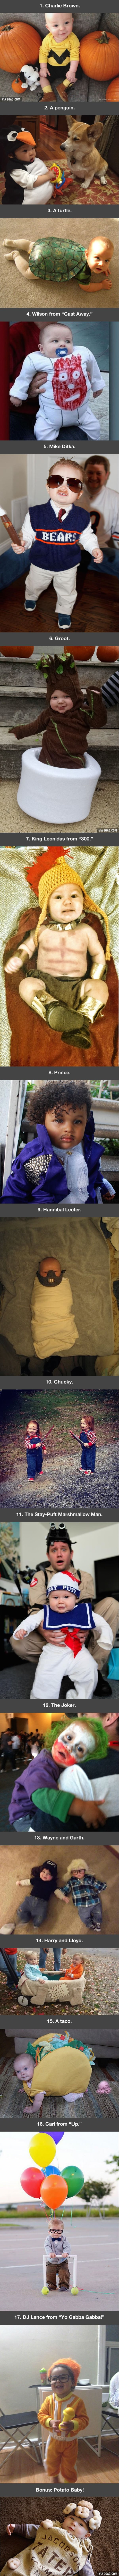 """17 babies in Halloween costumes. Carl from """"UP"""" is my favorite!"""